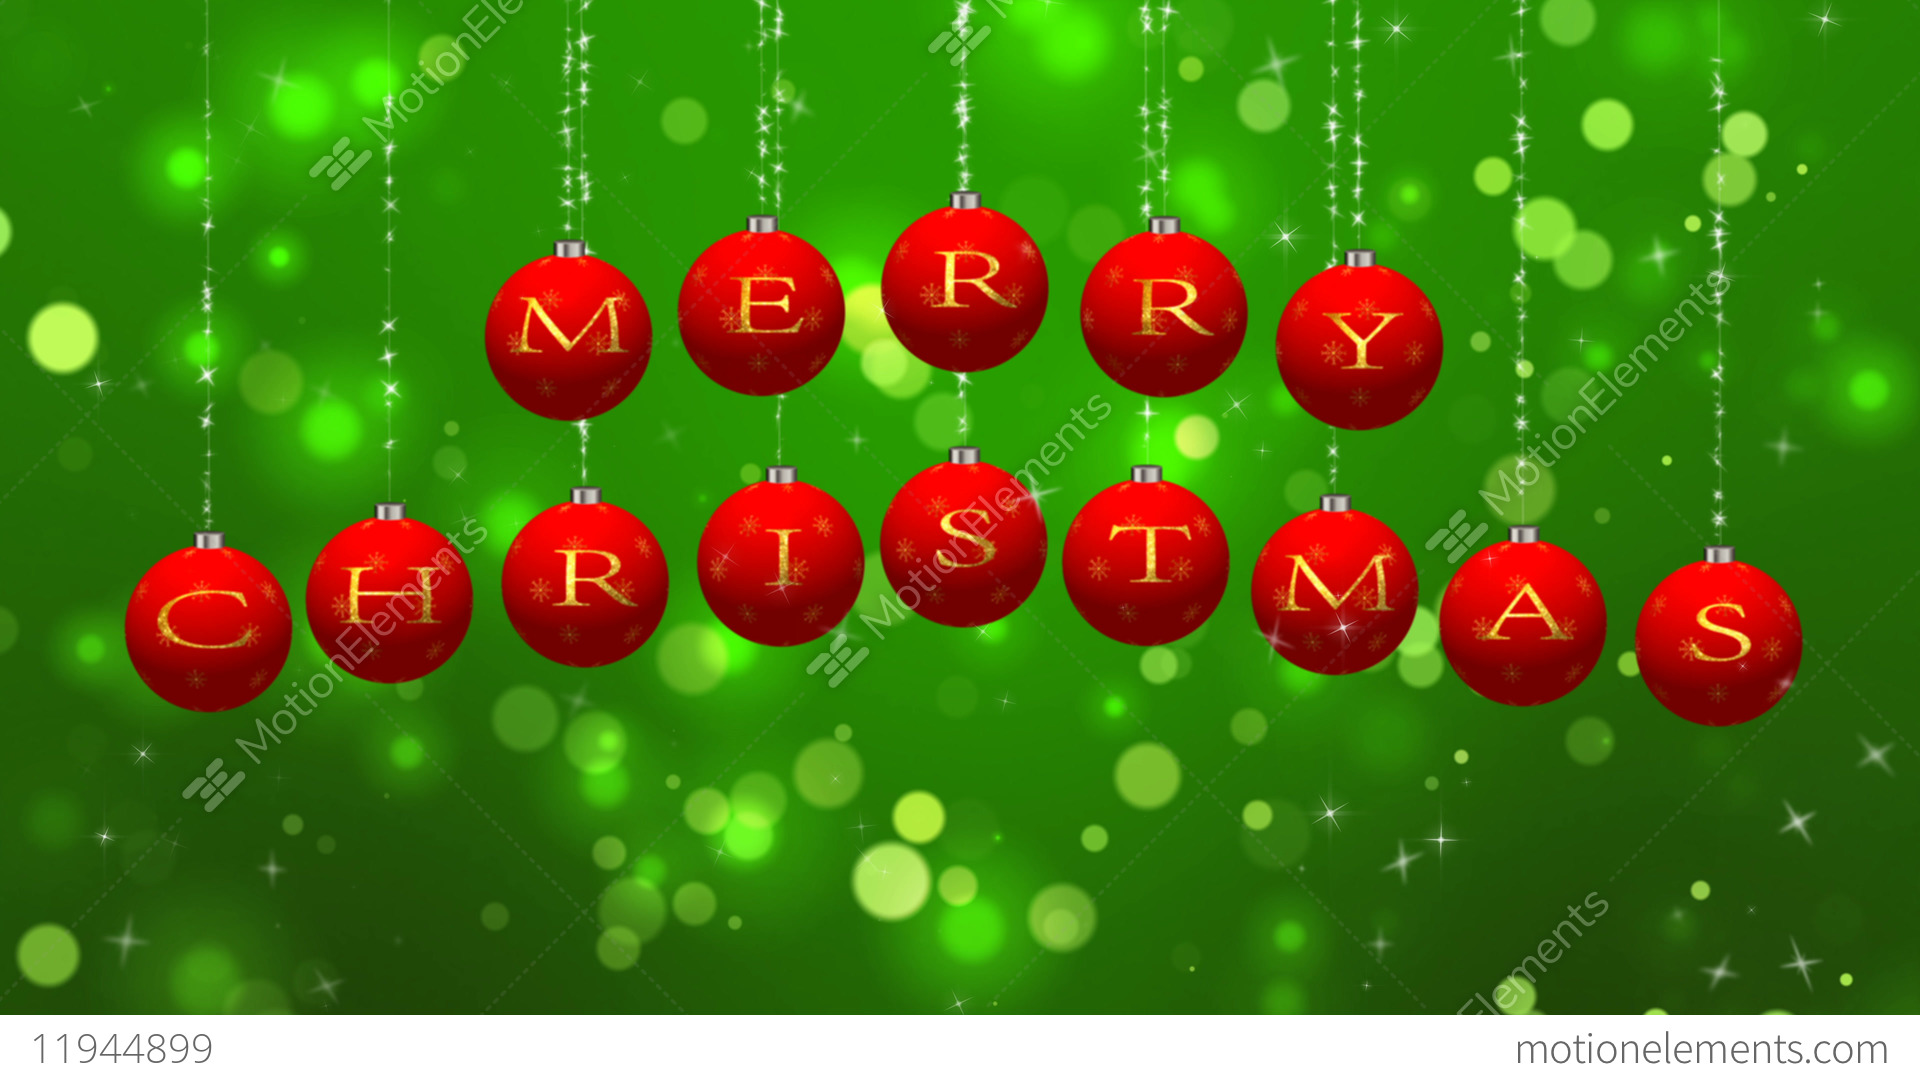 Merry Christmas Wishes On Green Particles Background Stock Animation ...